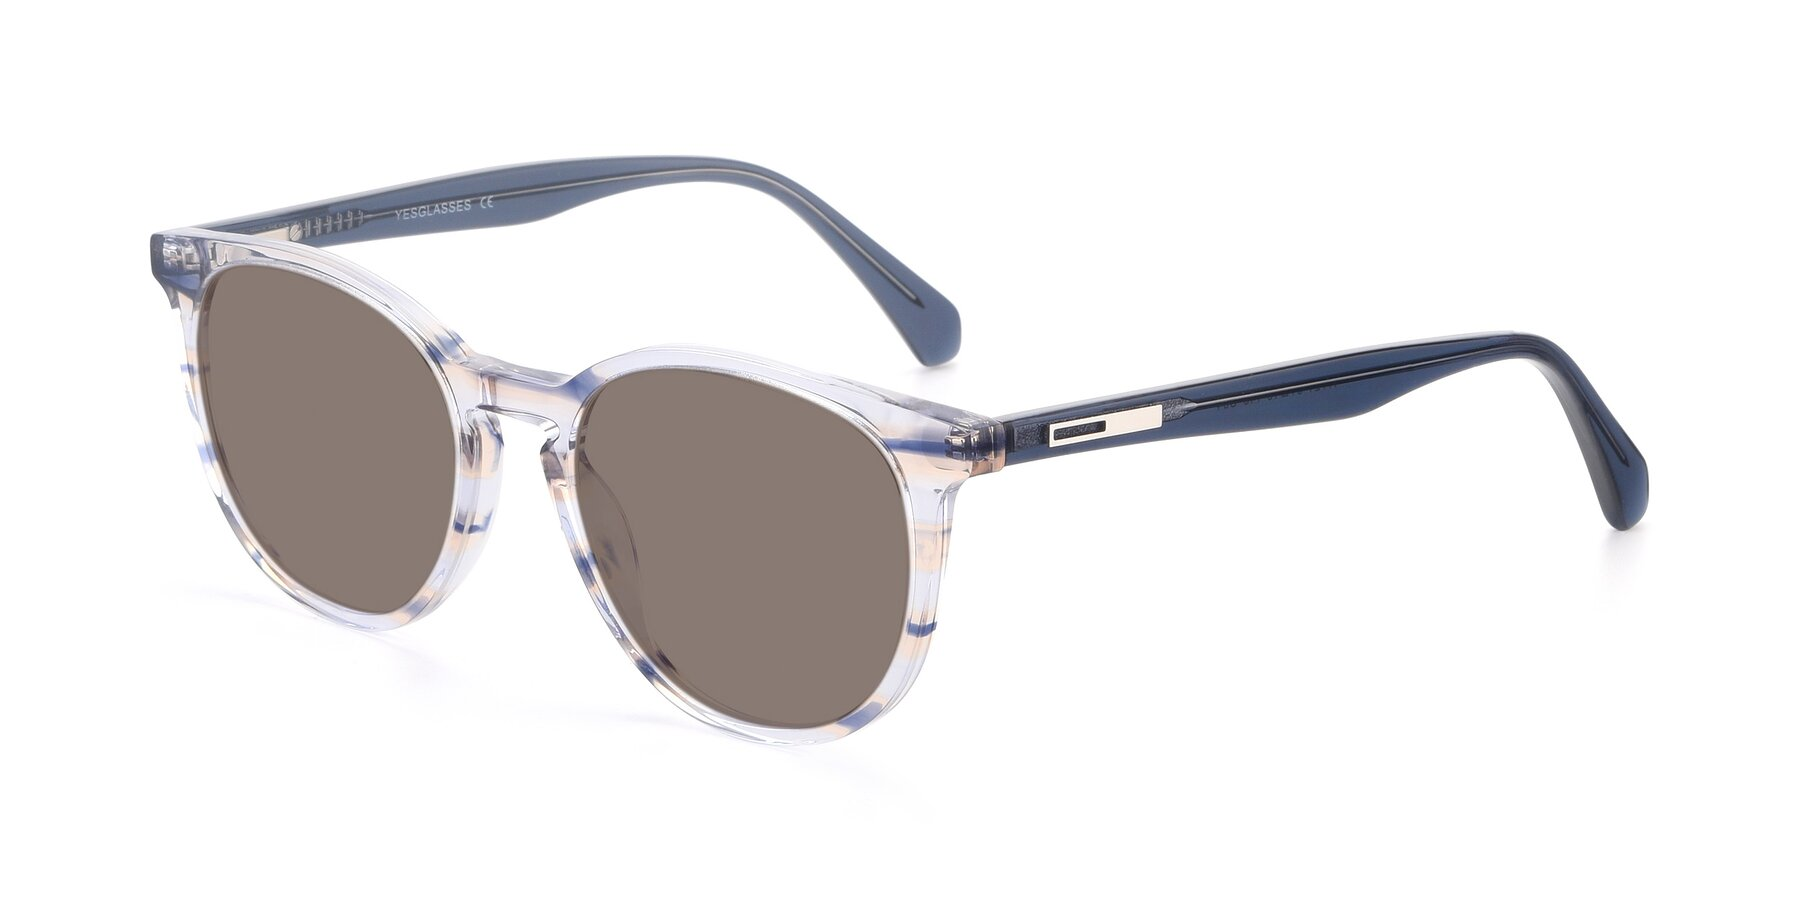 Angle of 17721 in Stripe Blue with Medium Brown Tinted Lenses